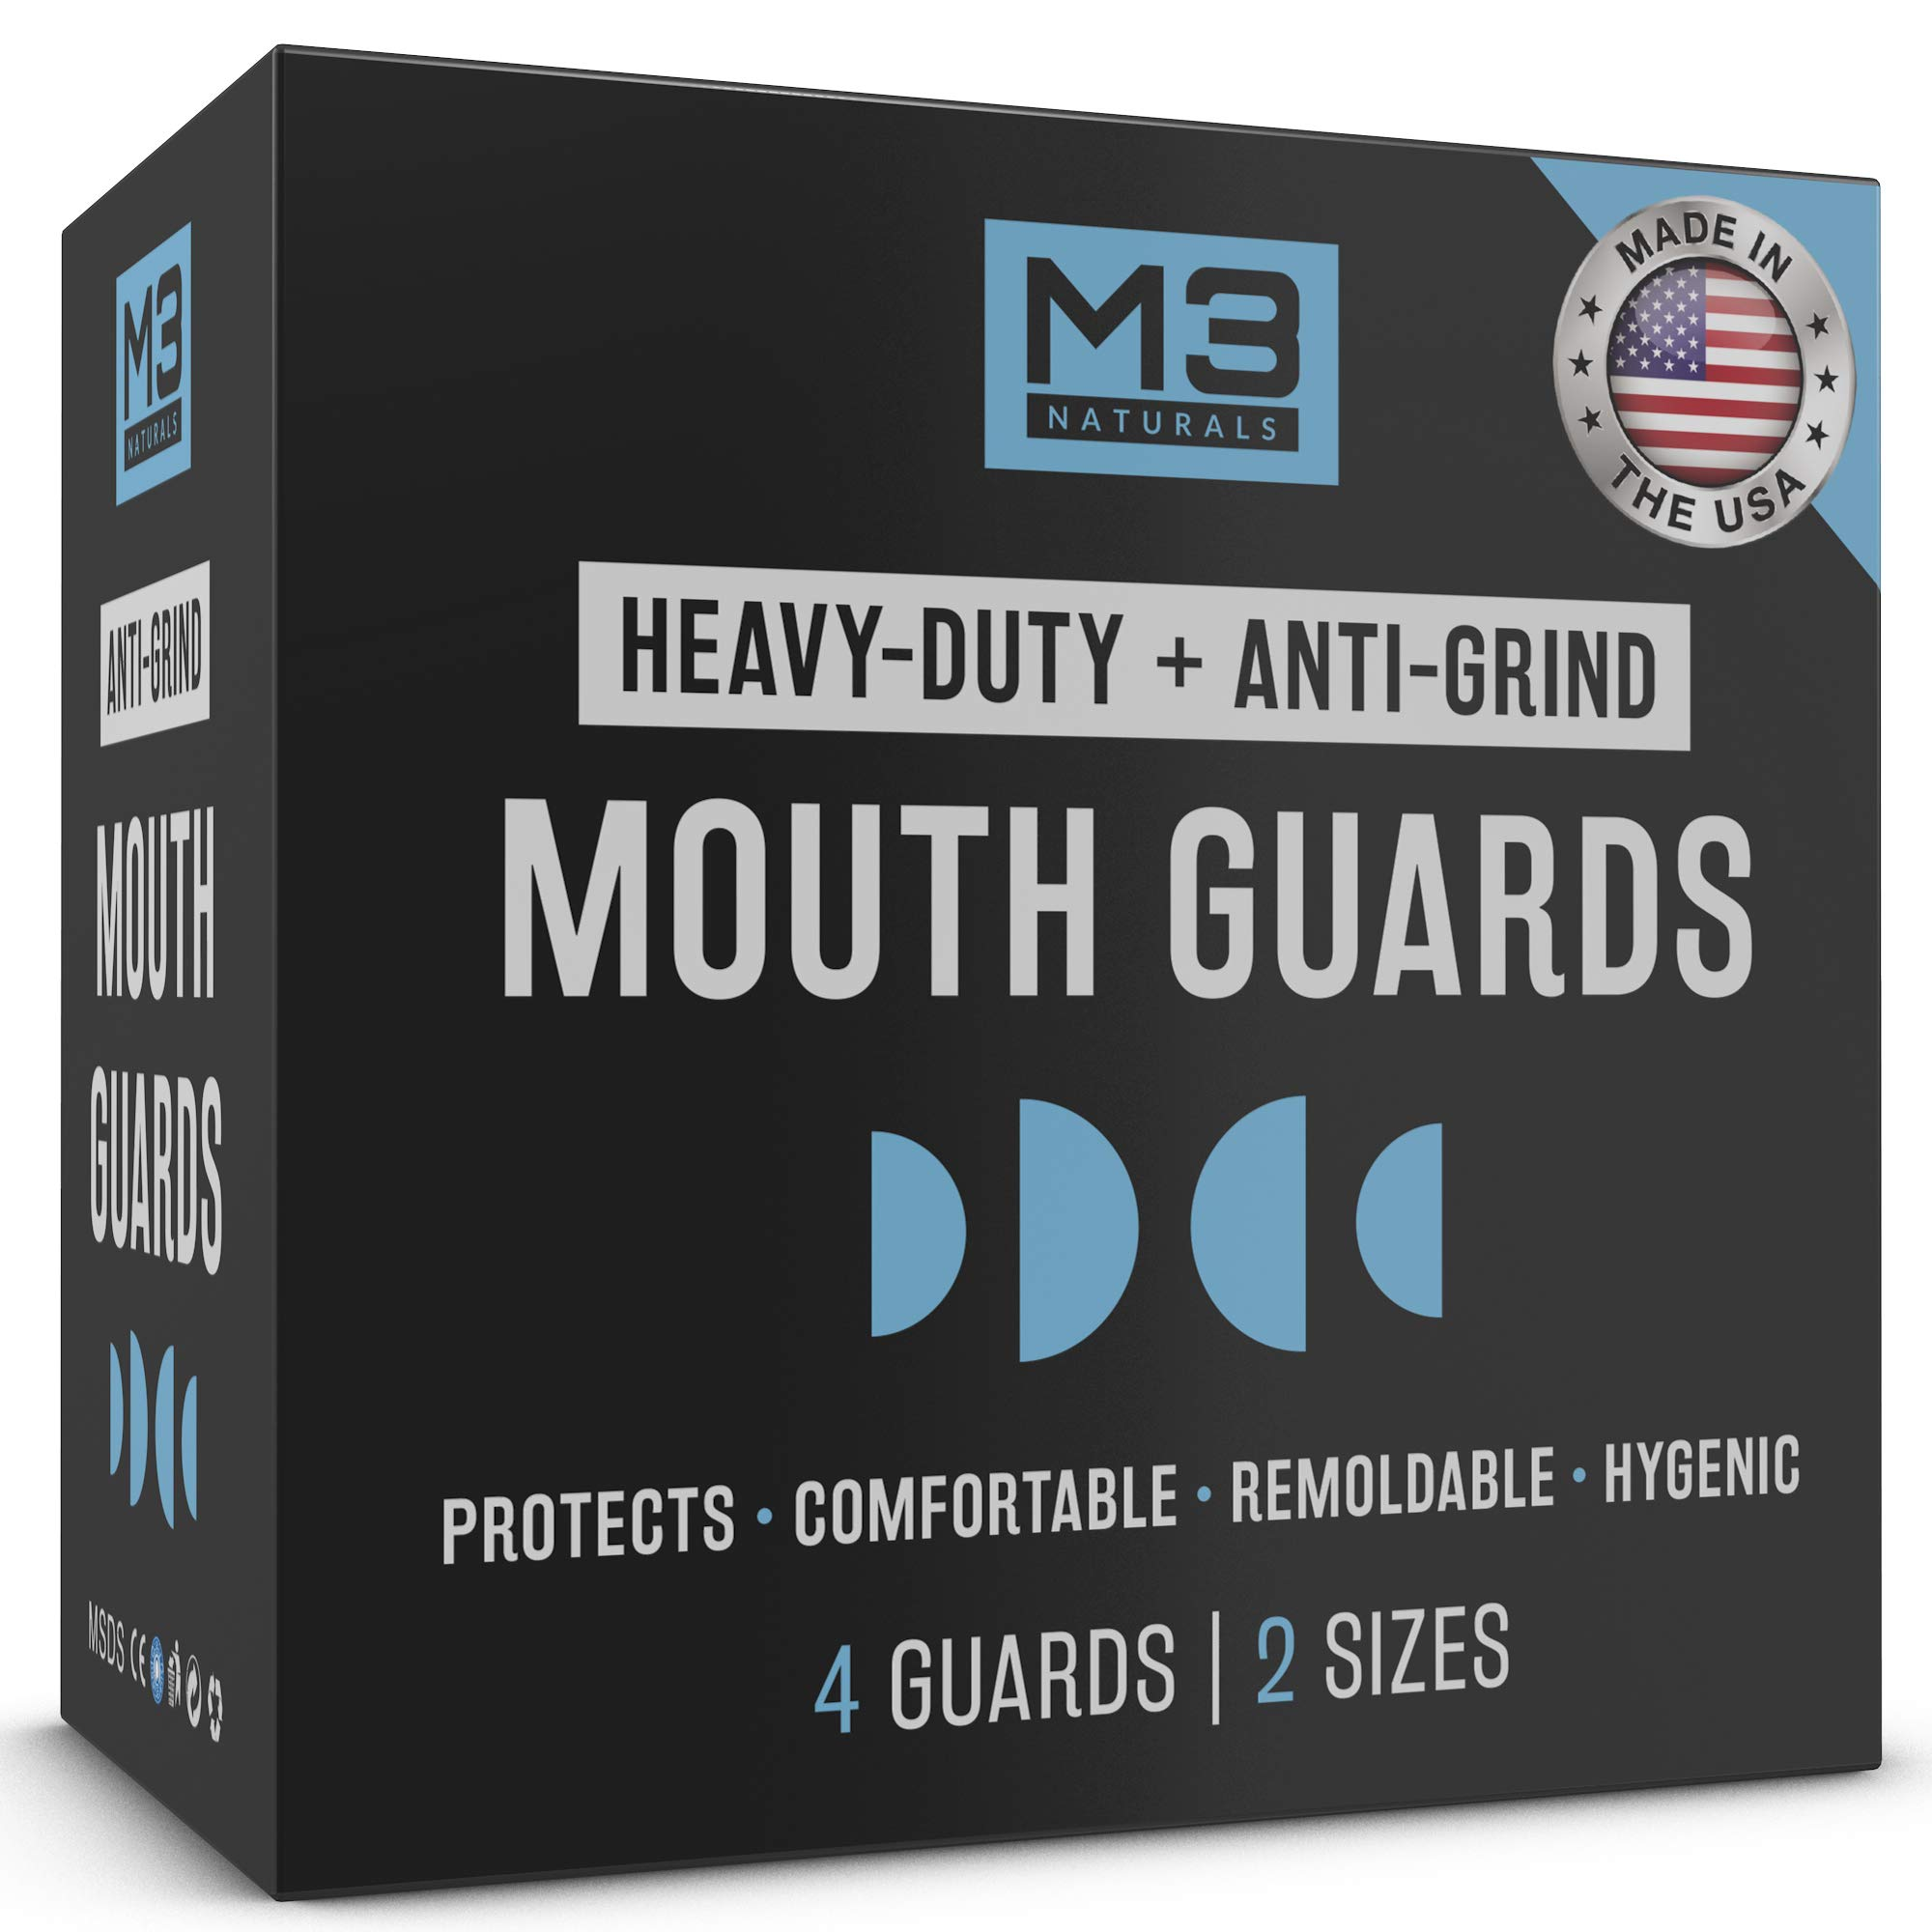 M3 Naturals Heavy Duty Mouth Guards for Teeth Grinding Night Clenching Moldable Trimmable Bruxism Anti Grind Dental Sport Bite Mouthguard Sleep Nightguard Retainer Case 2-Size 4 Pieces by M3 Naturals